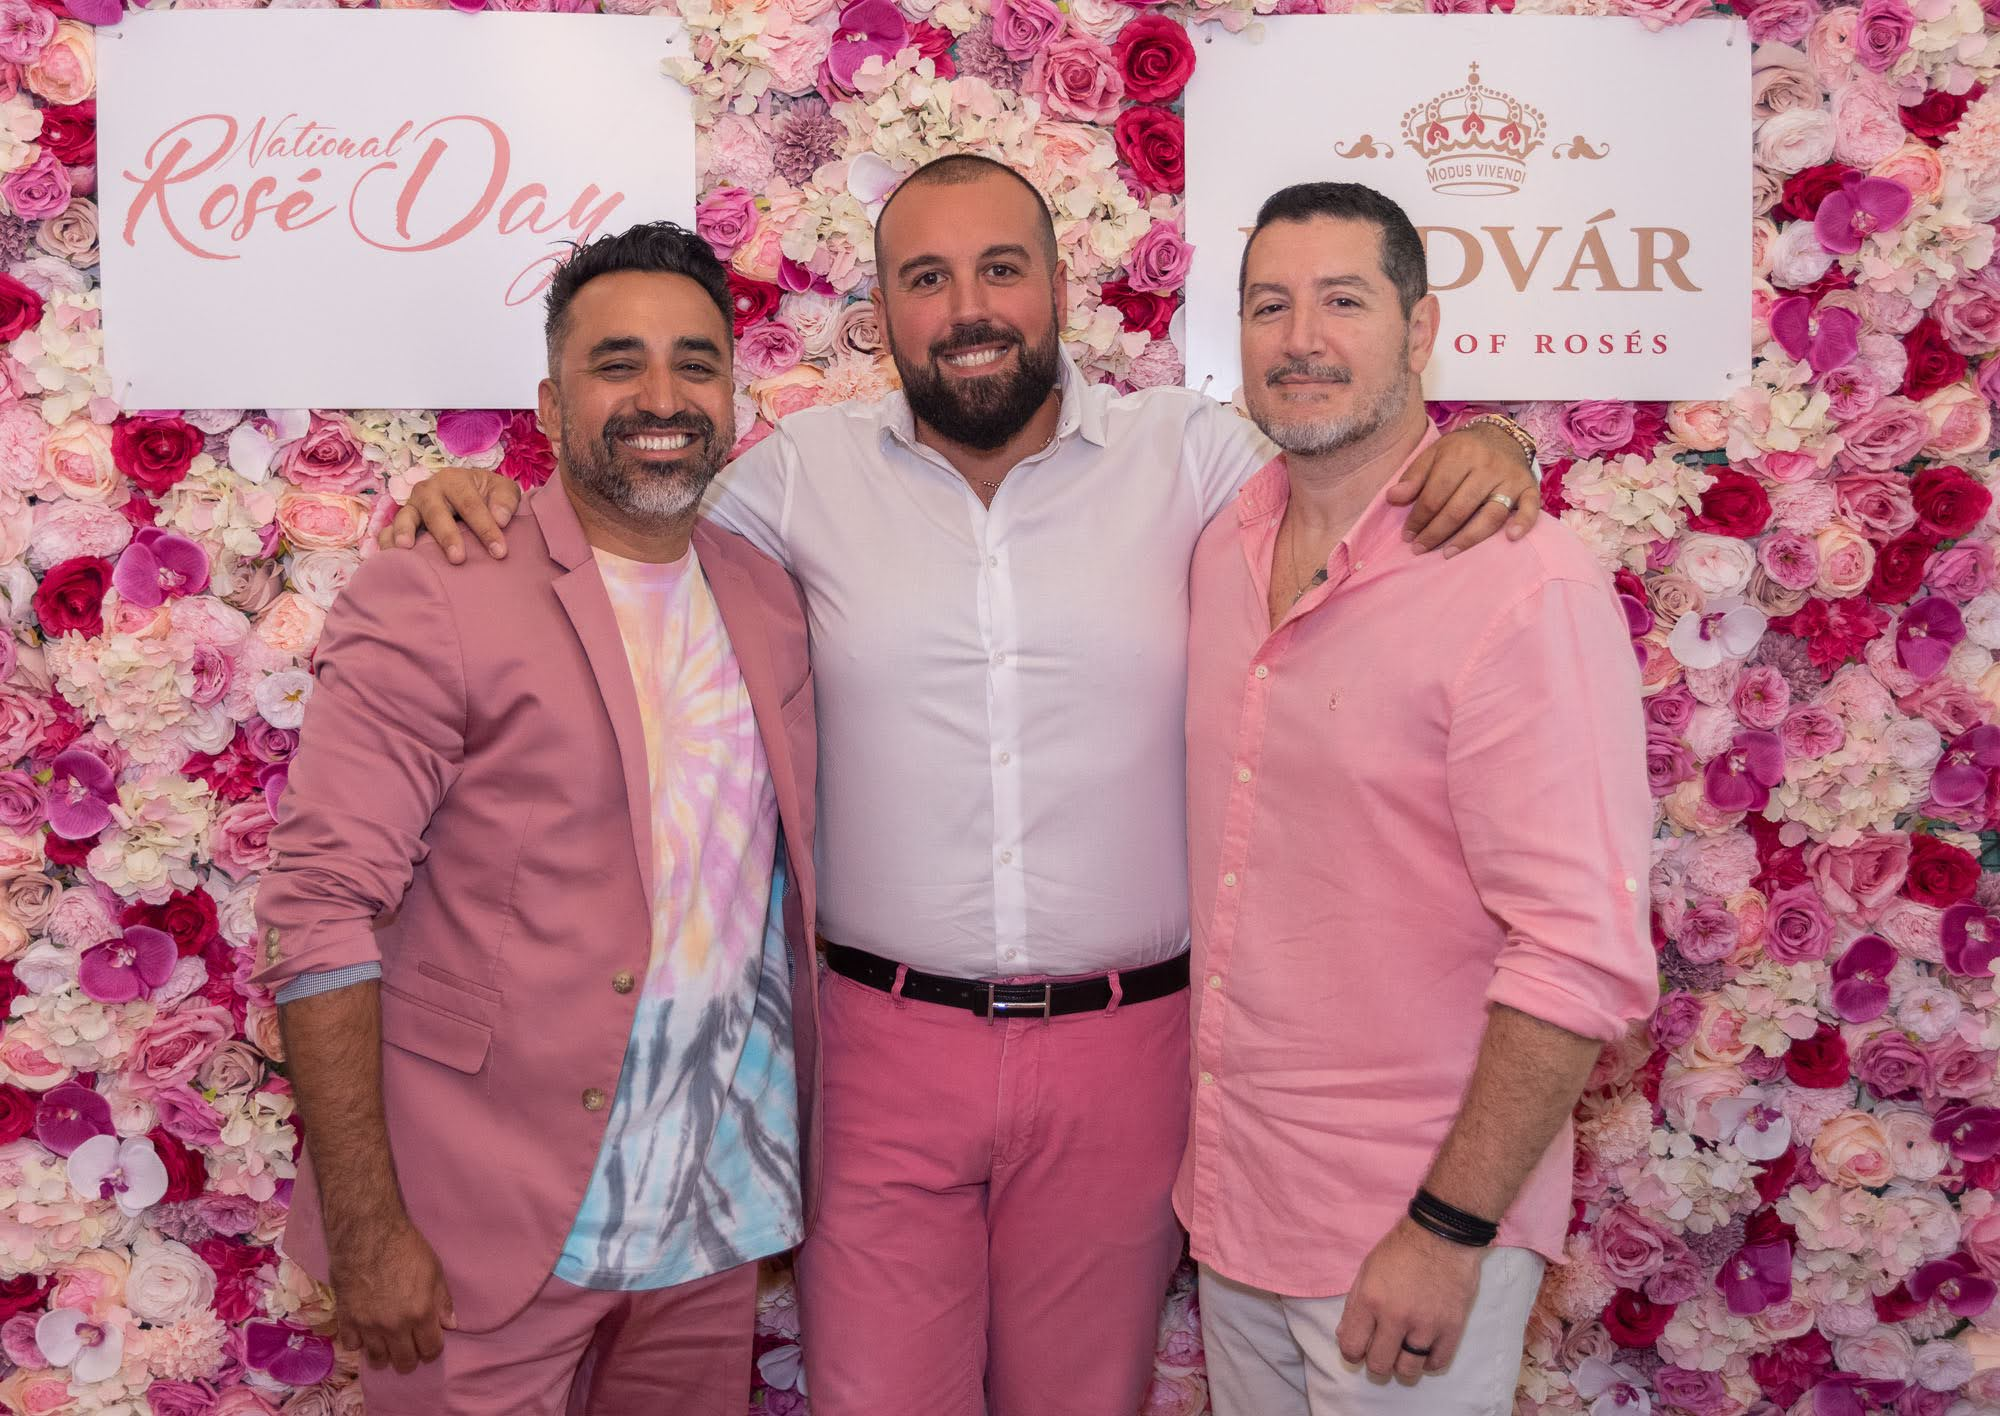 Three gentlemen posing for a photo in front of a floral wall